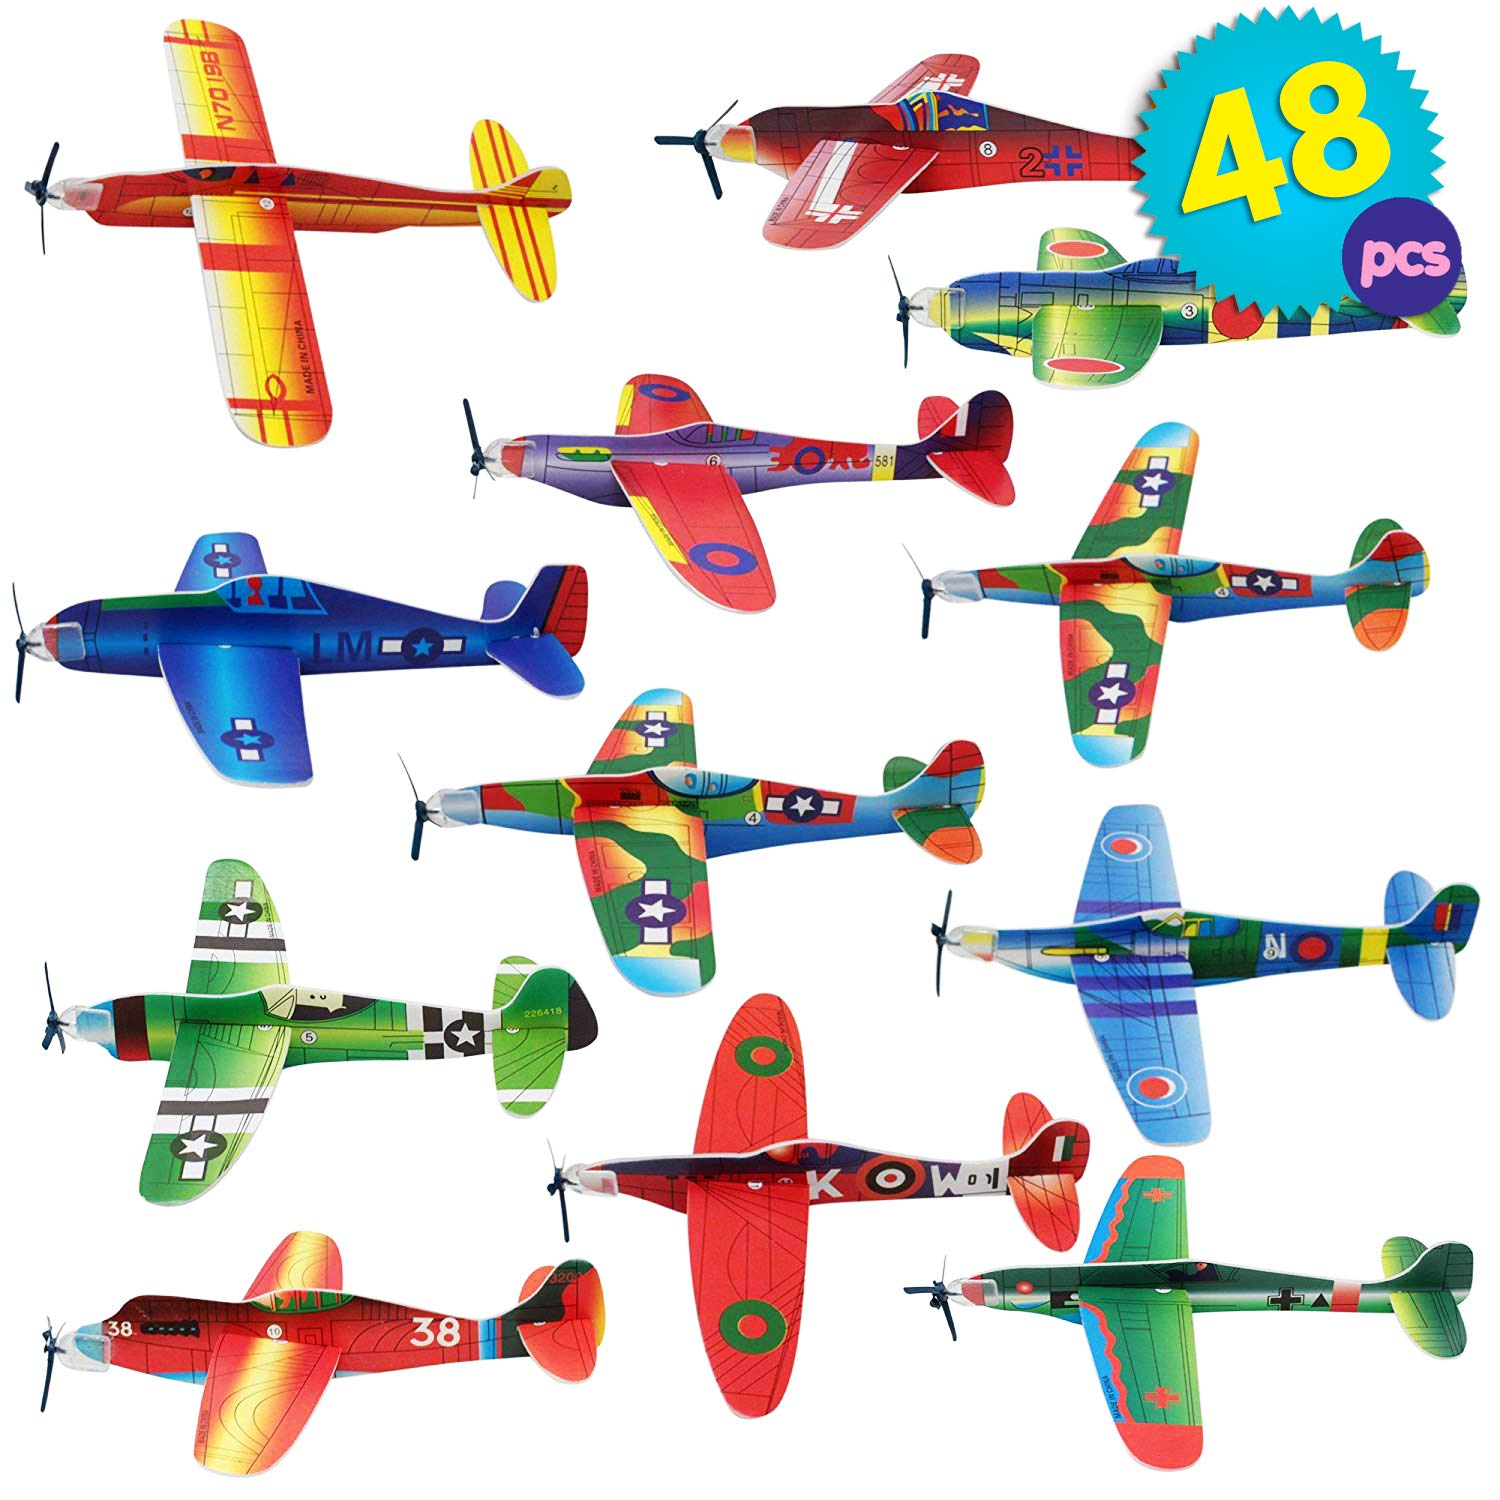 The Twiddlers 48 Paper Toy Planes - Flying Foam Airplane Glider Kit in 12 Assorted Designs - for Kids Birthday Party Supply | Goodie Bag Fillers | Classroom Prize | Lucky Dip Favors by The TWIDDLERS